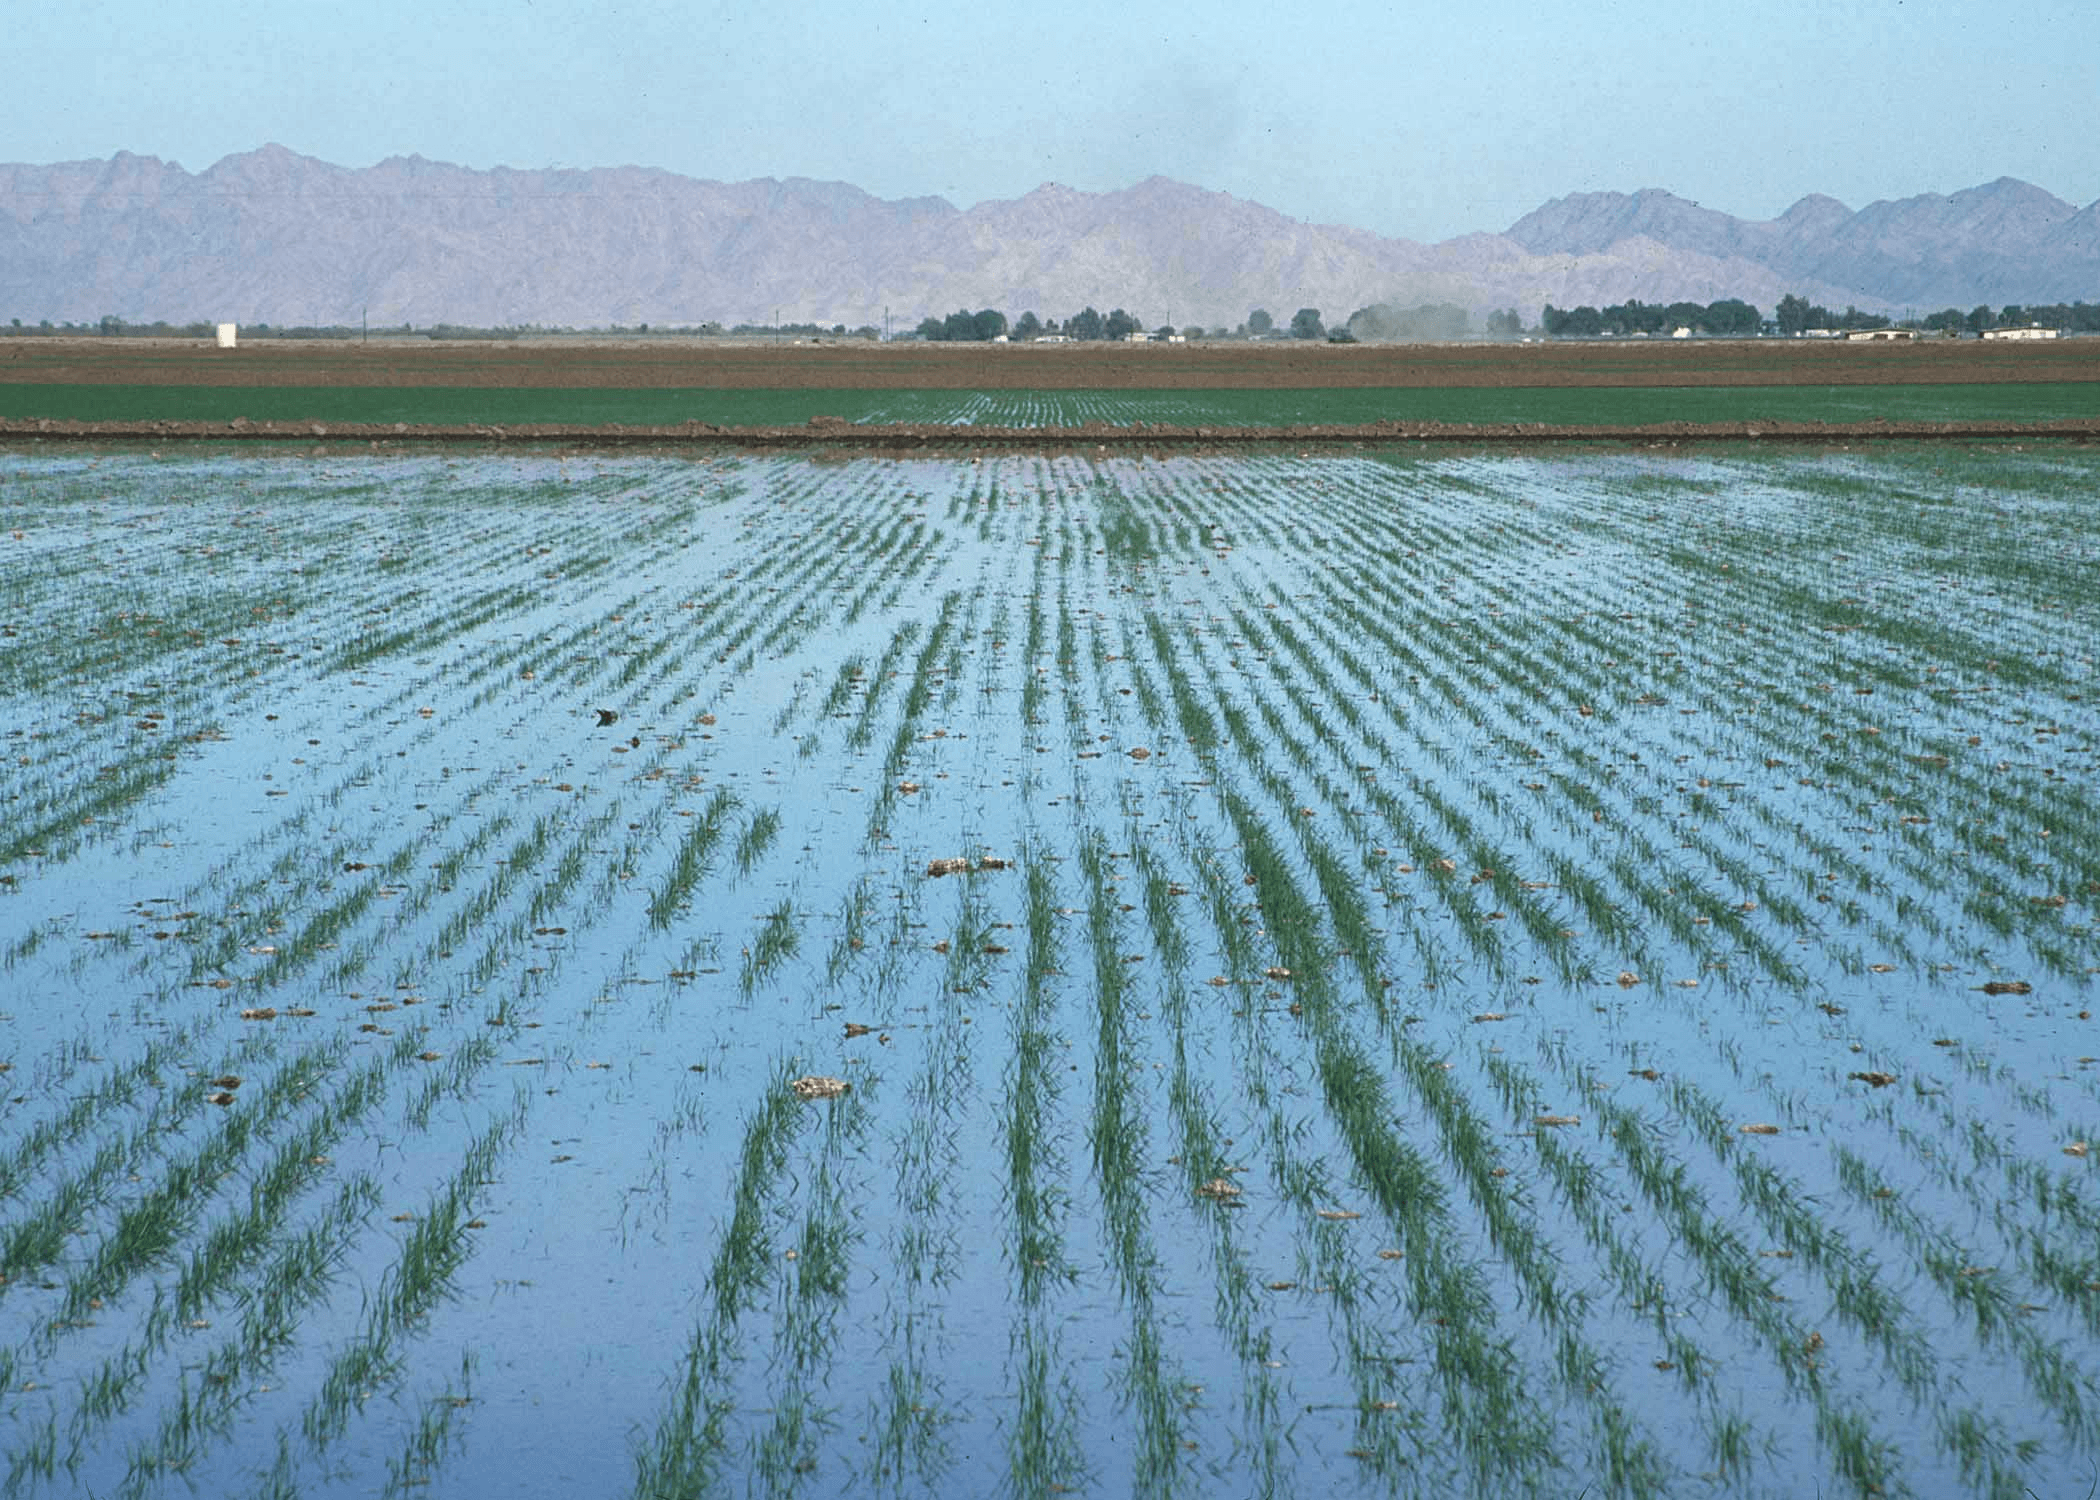 Selecting surface irrigation methods